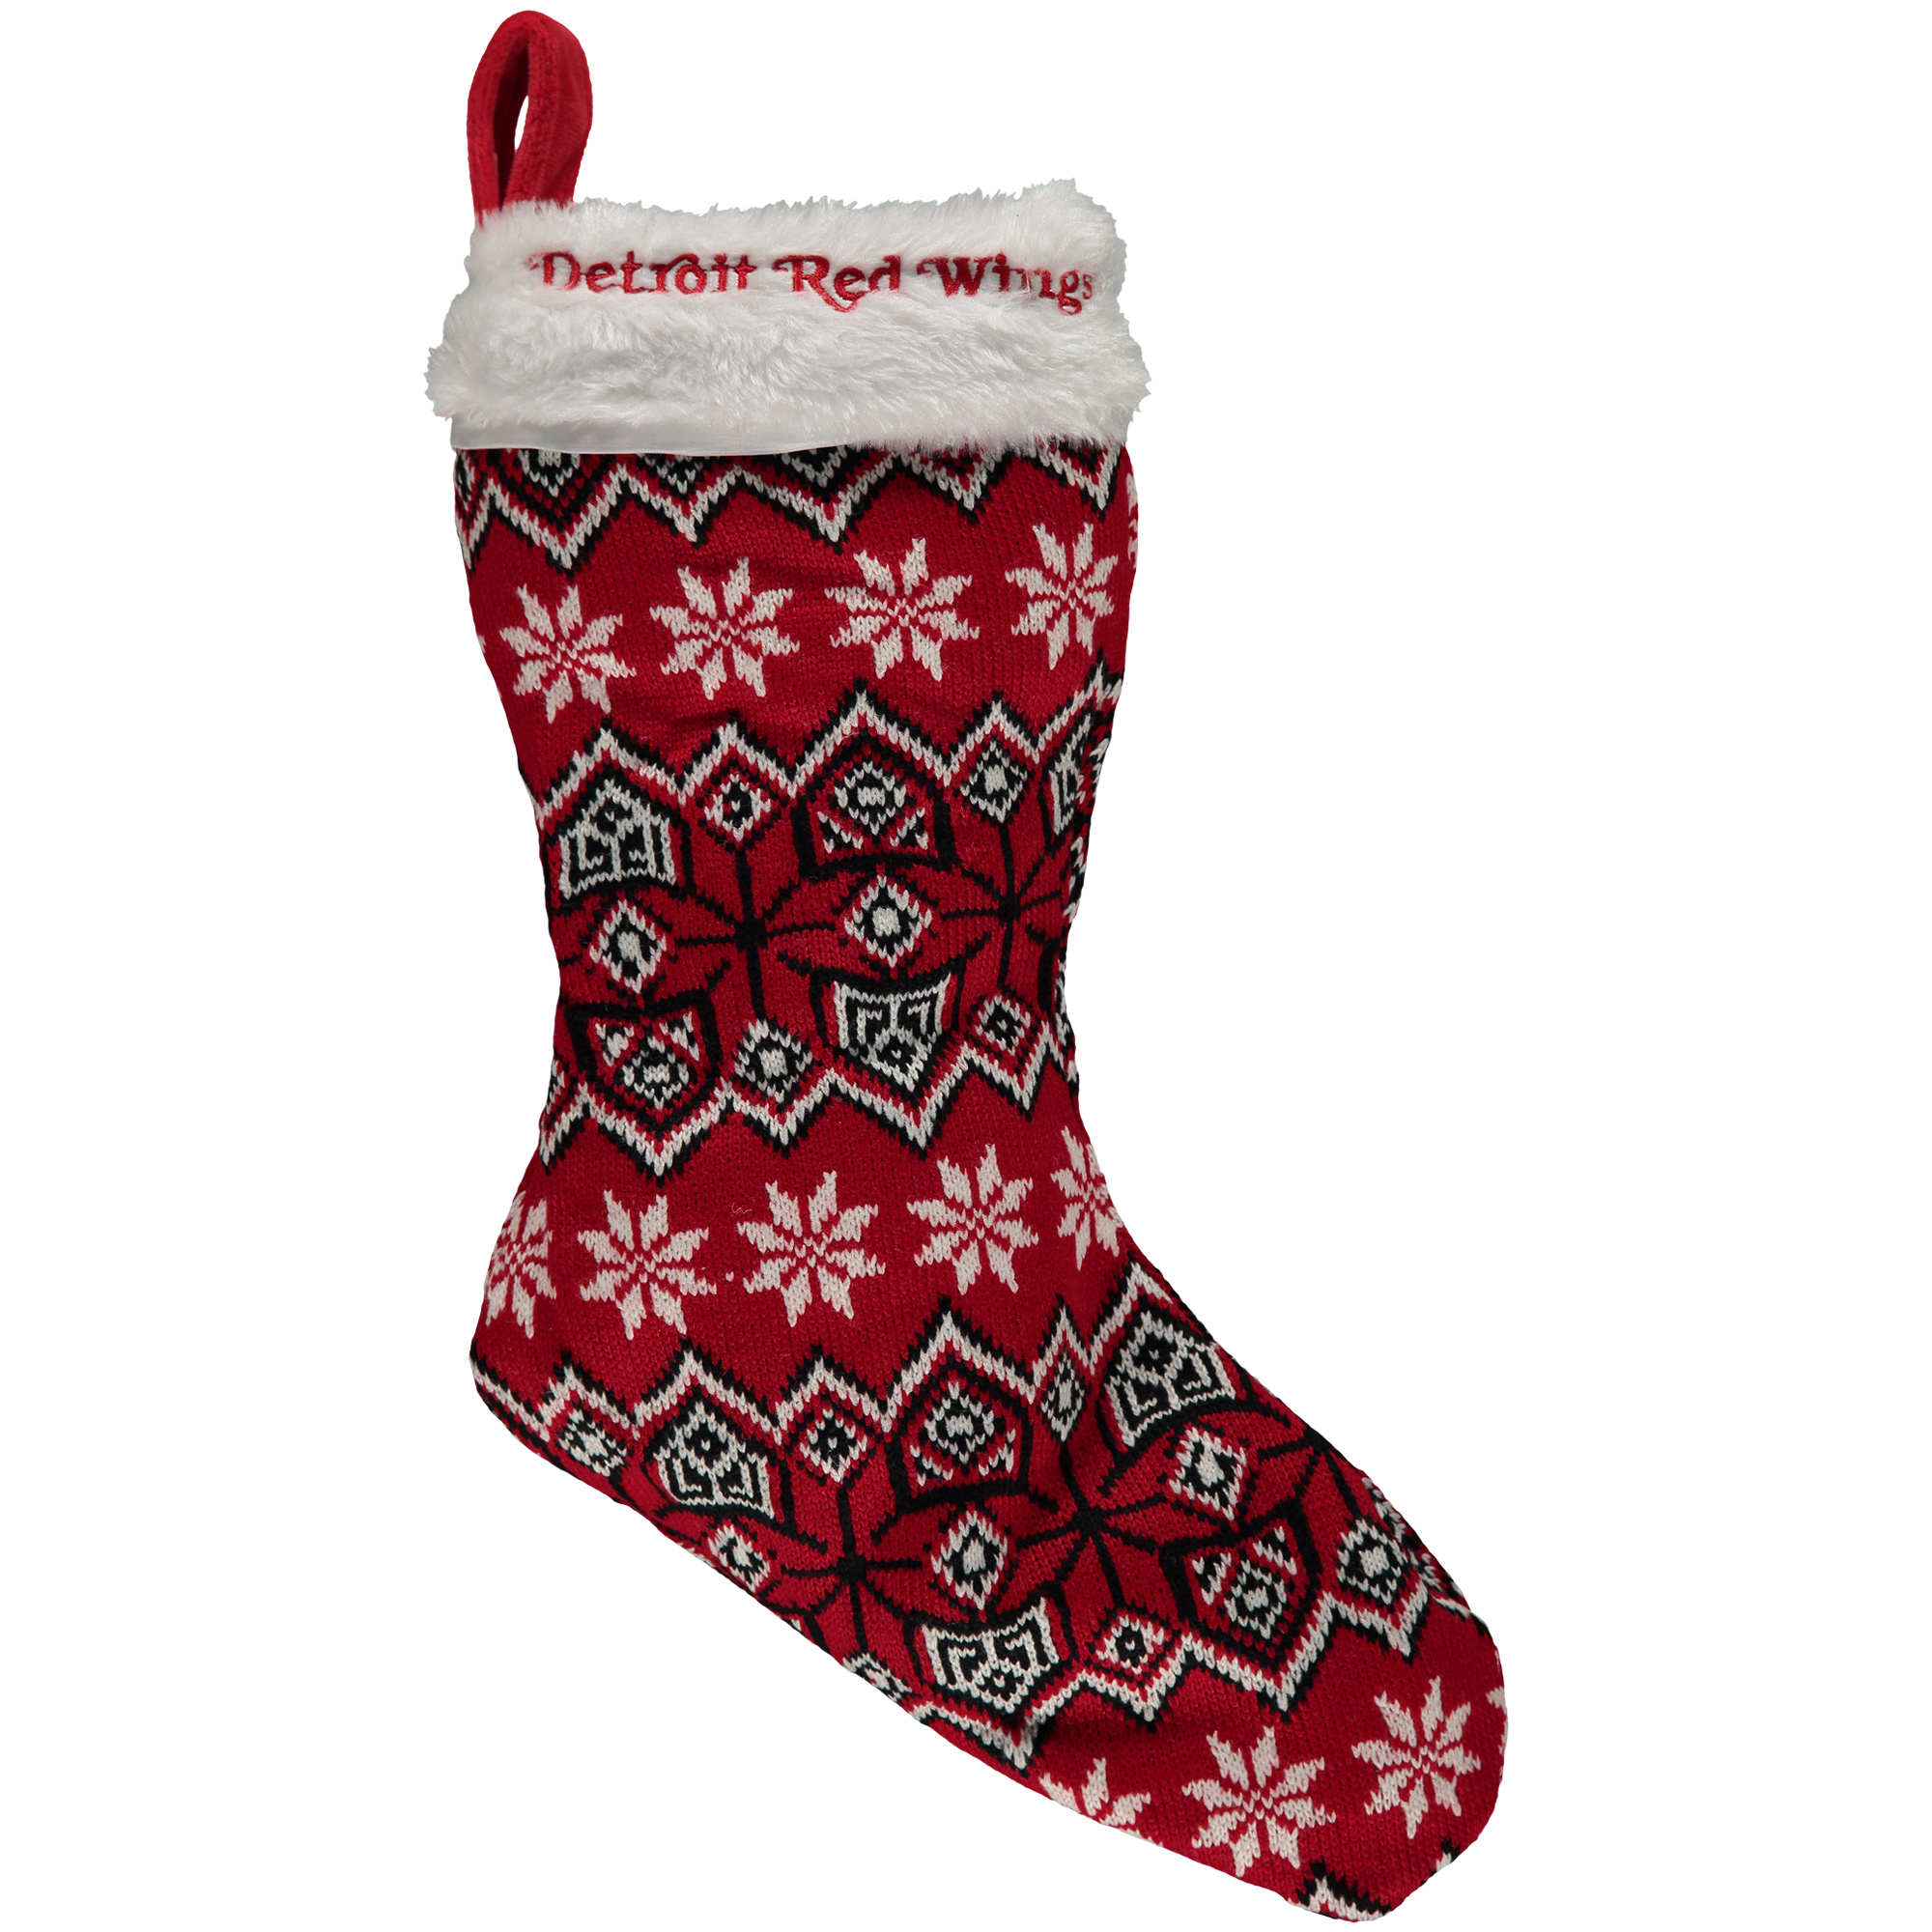 Detroit Red Wings Knit Stocking - No Size